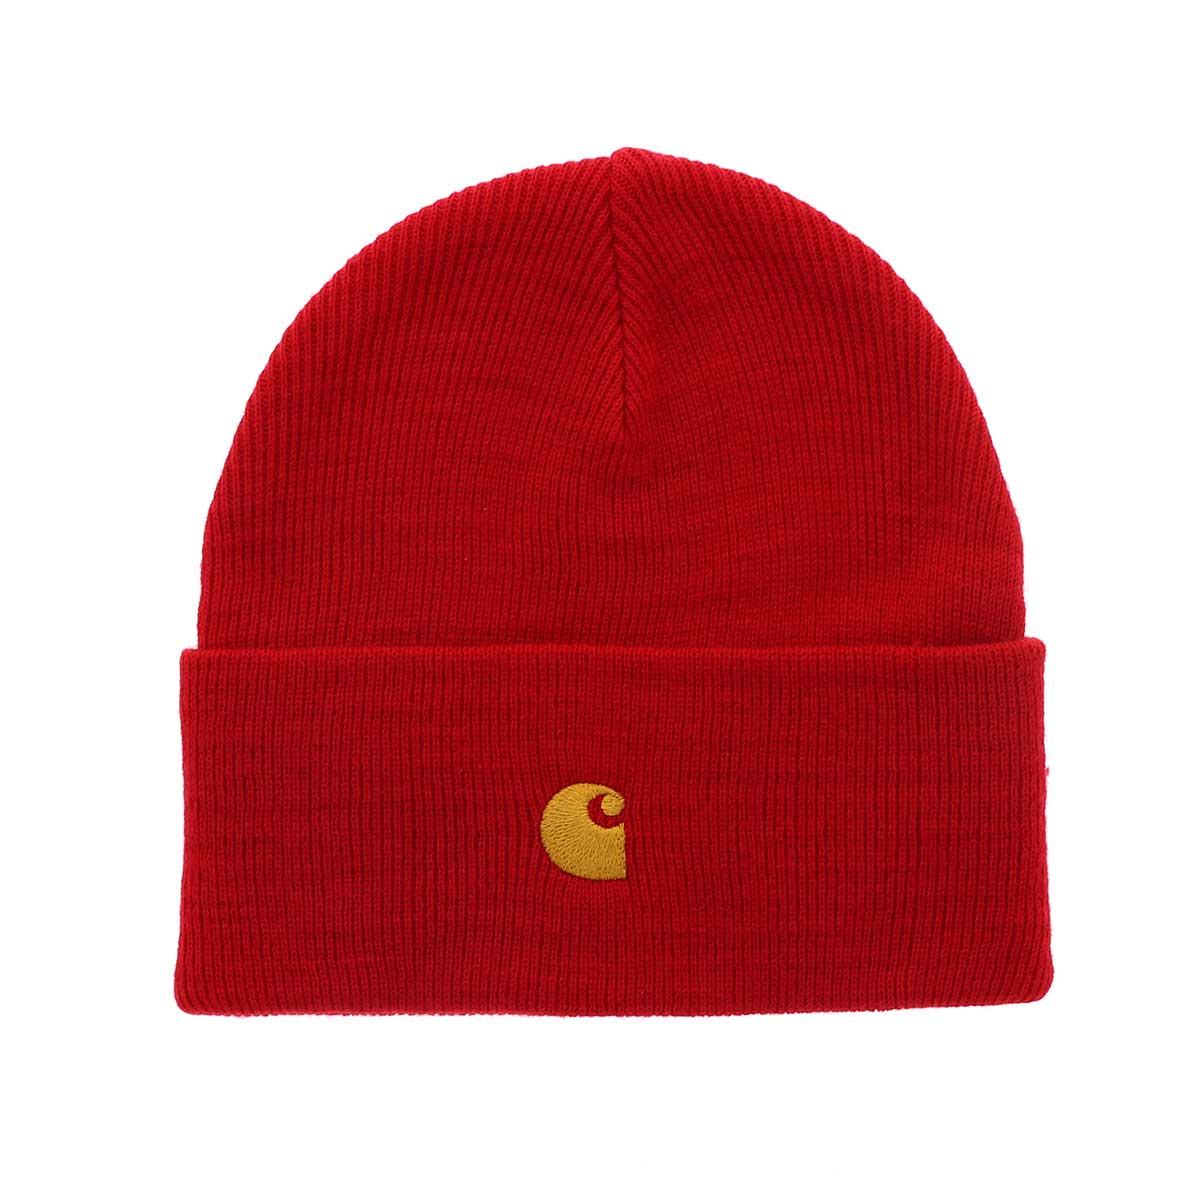 Carhartt WIP - CHASE BEANIE - Etna Red/Gold